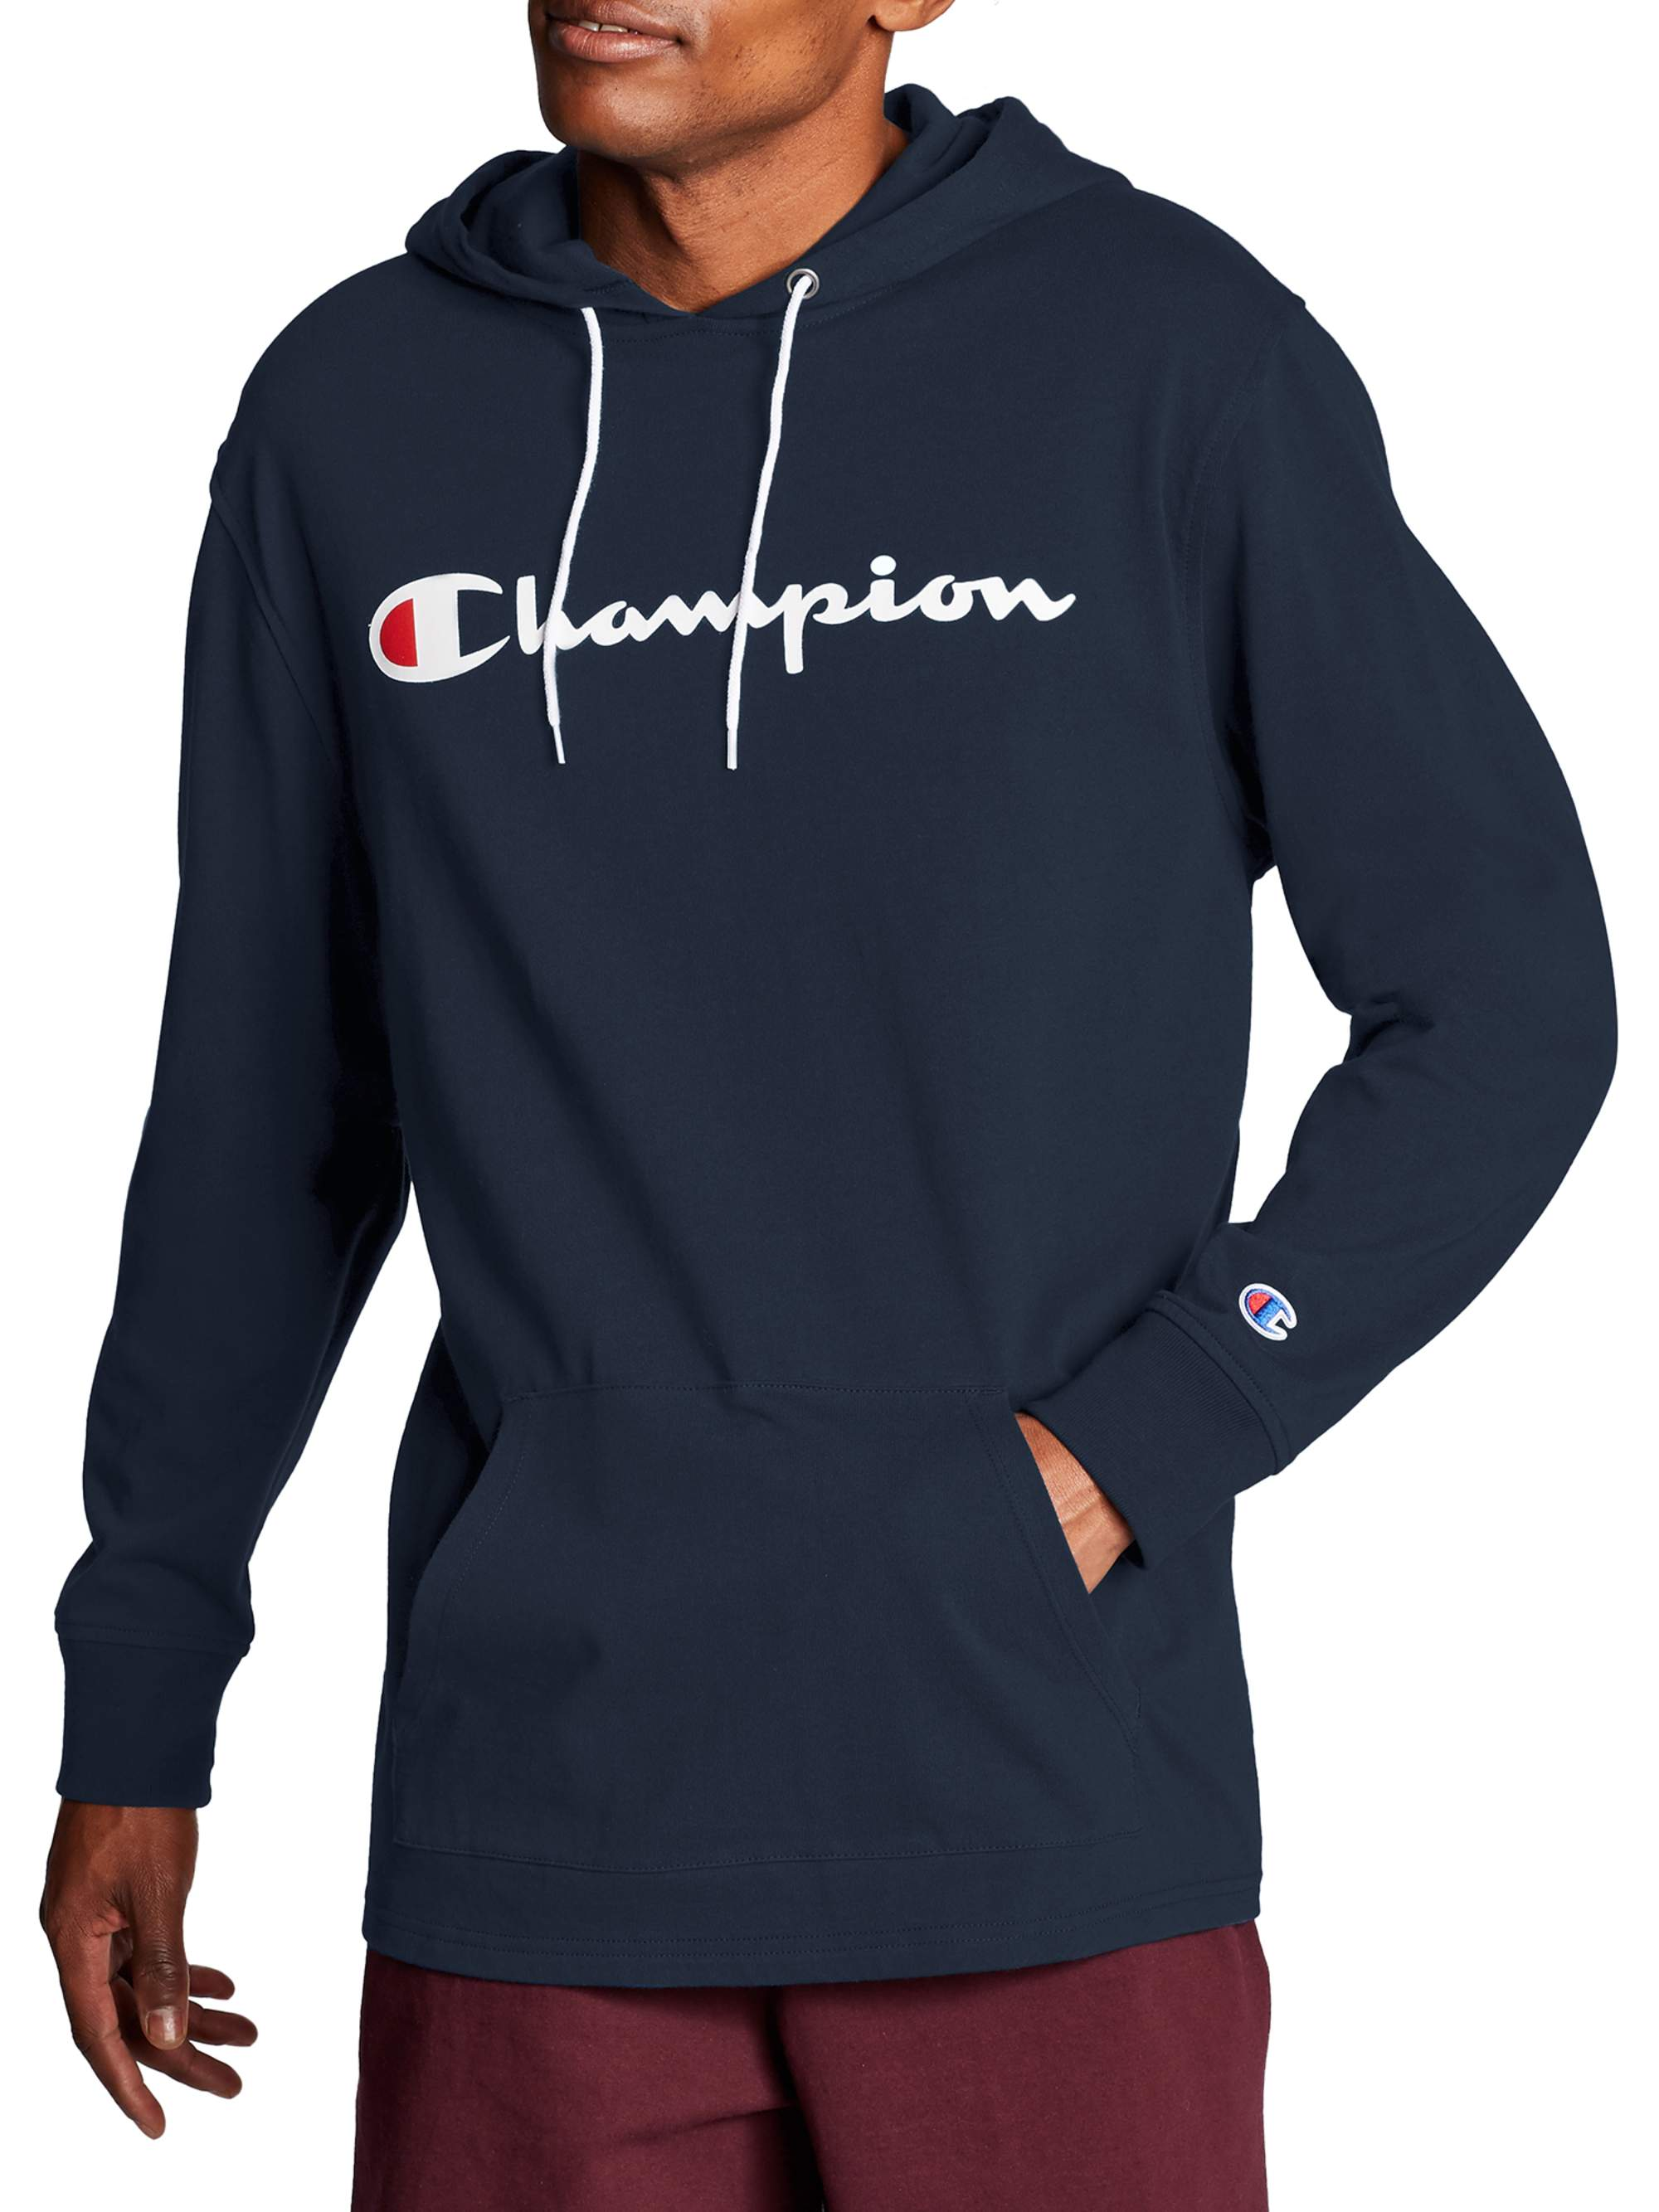 FASHION#CC Mens Pullover Hoodie Sport Outwear with Pockets Thick Thighs Save Lives